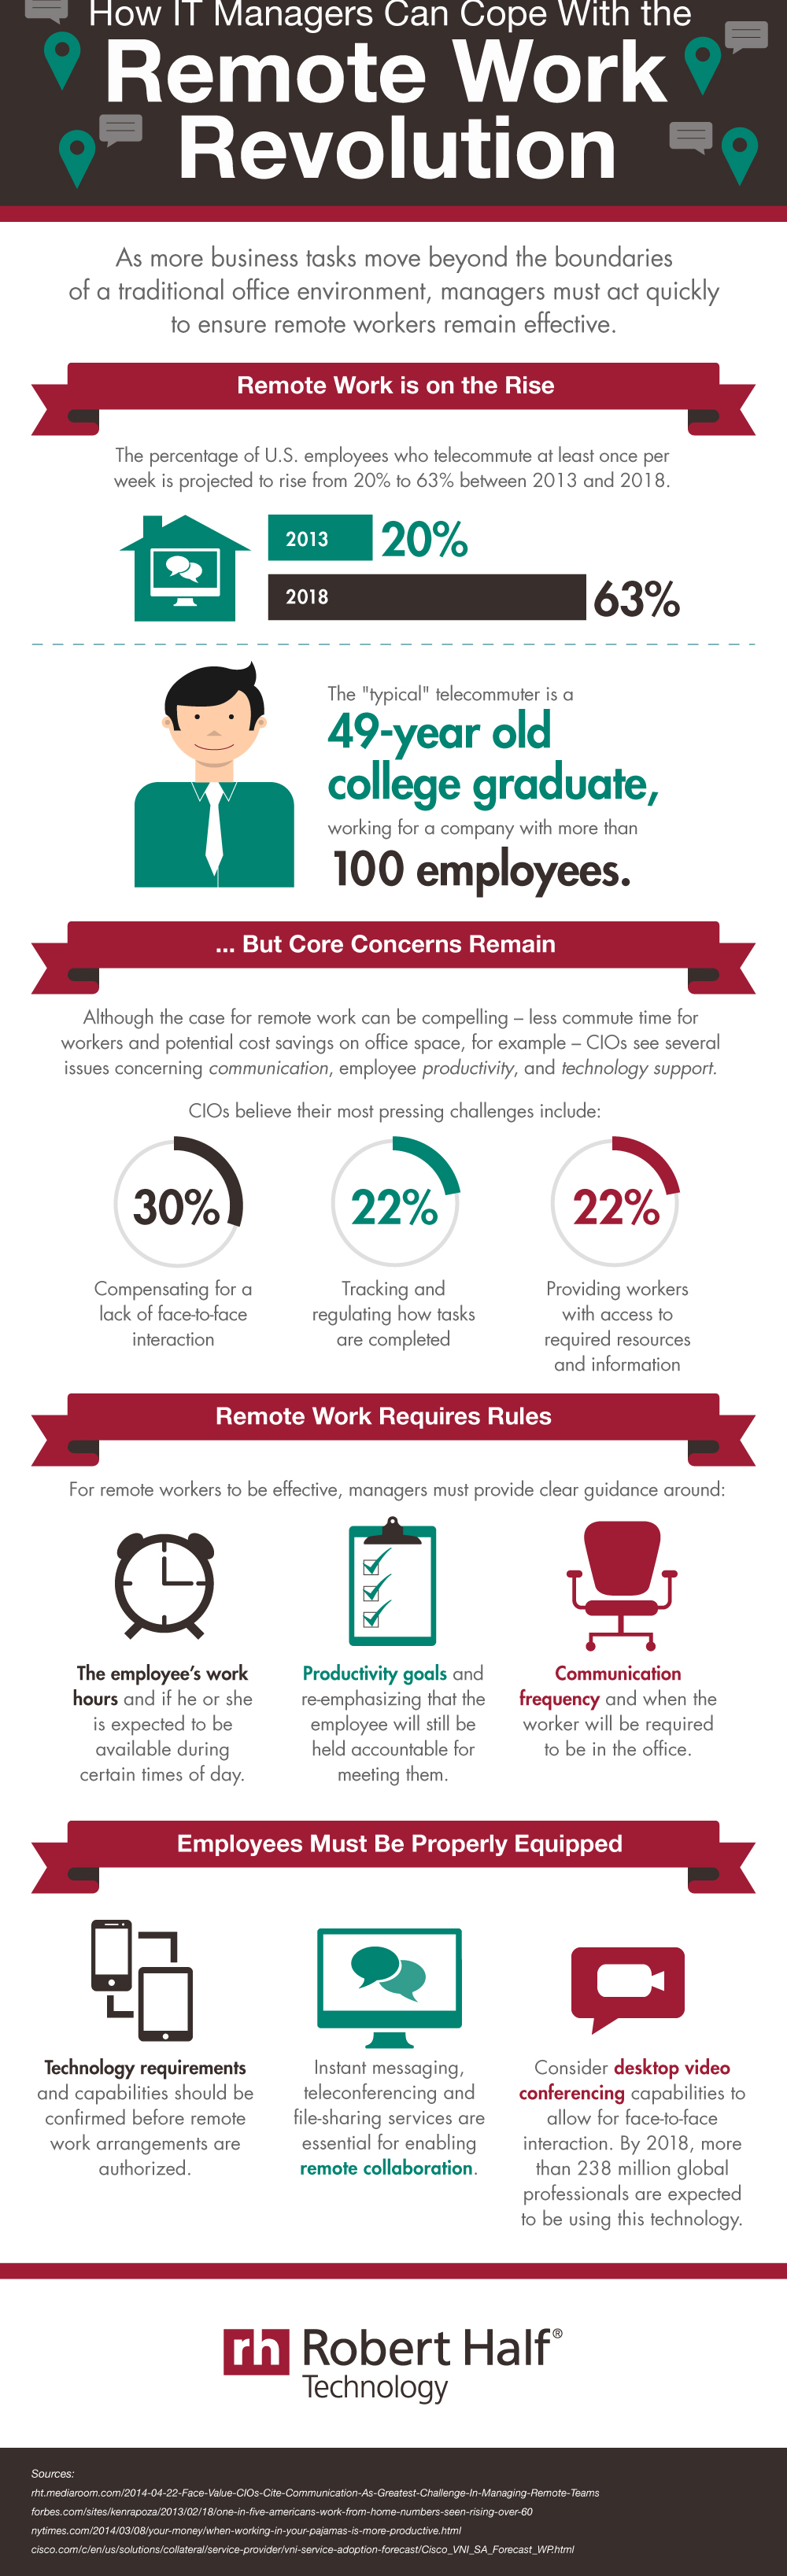 Telecommuting Increases But Challenges Remain Infographic Robert